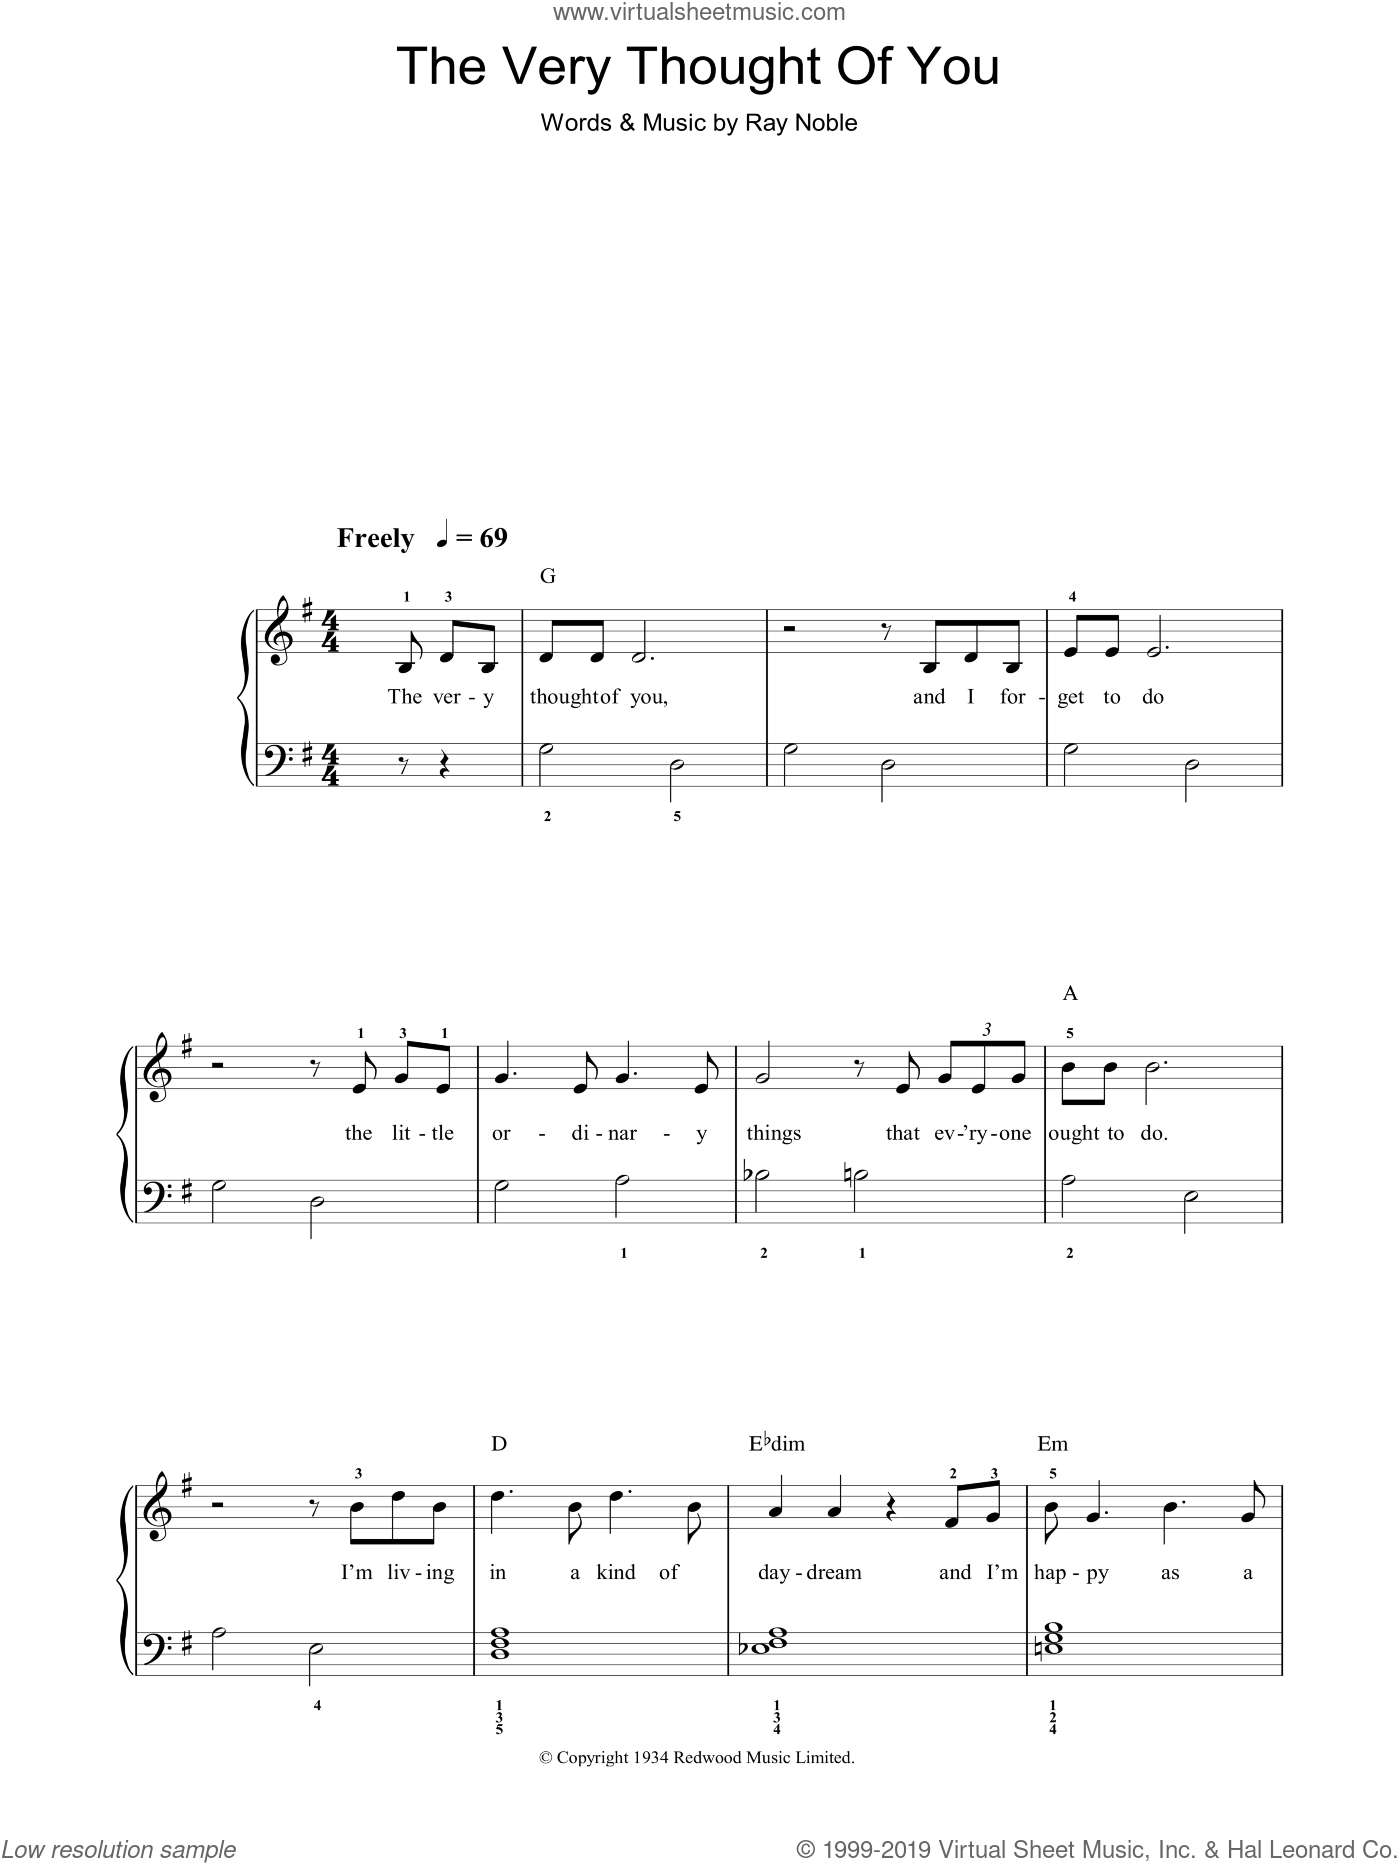 The Very Thought Of You sheet music for piano solo (chords) by Ray Noble